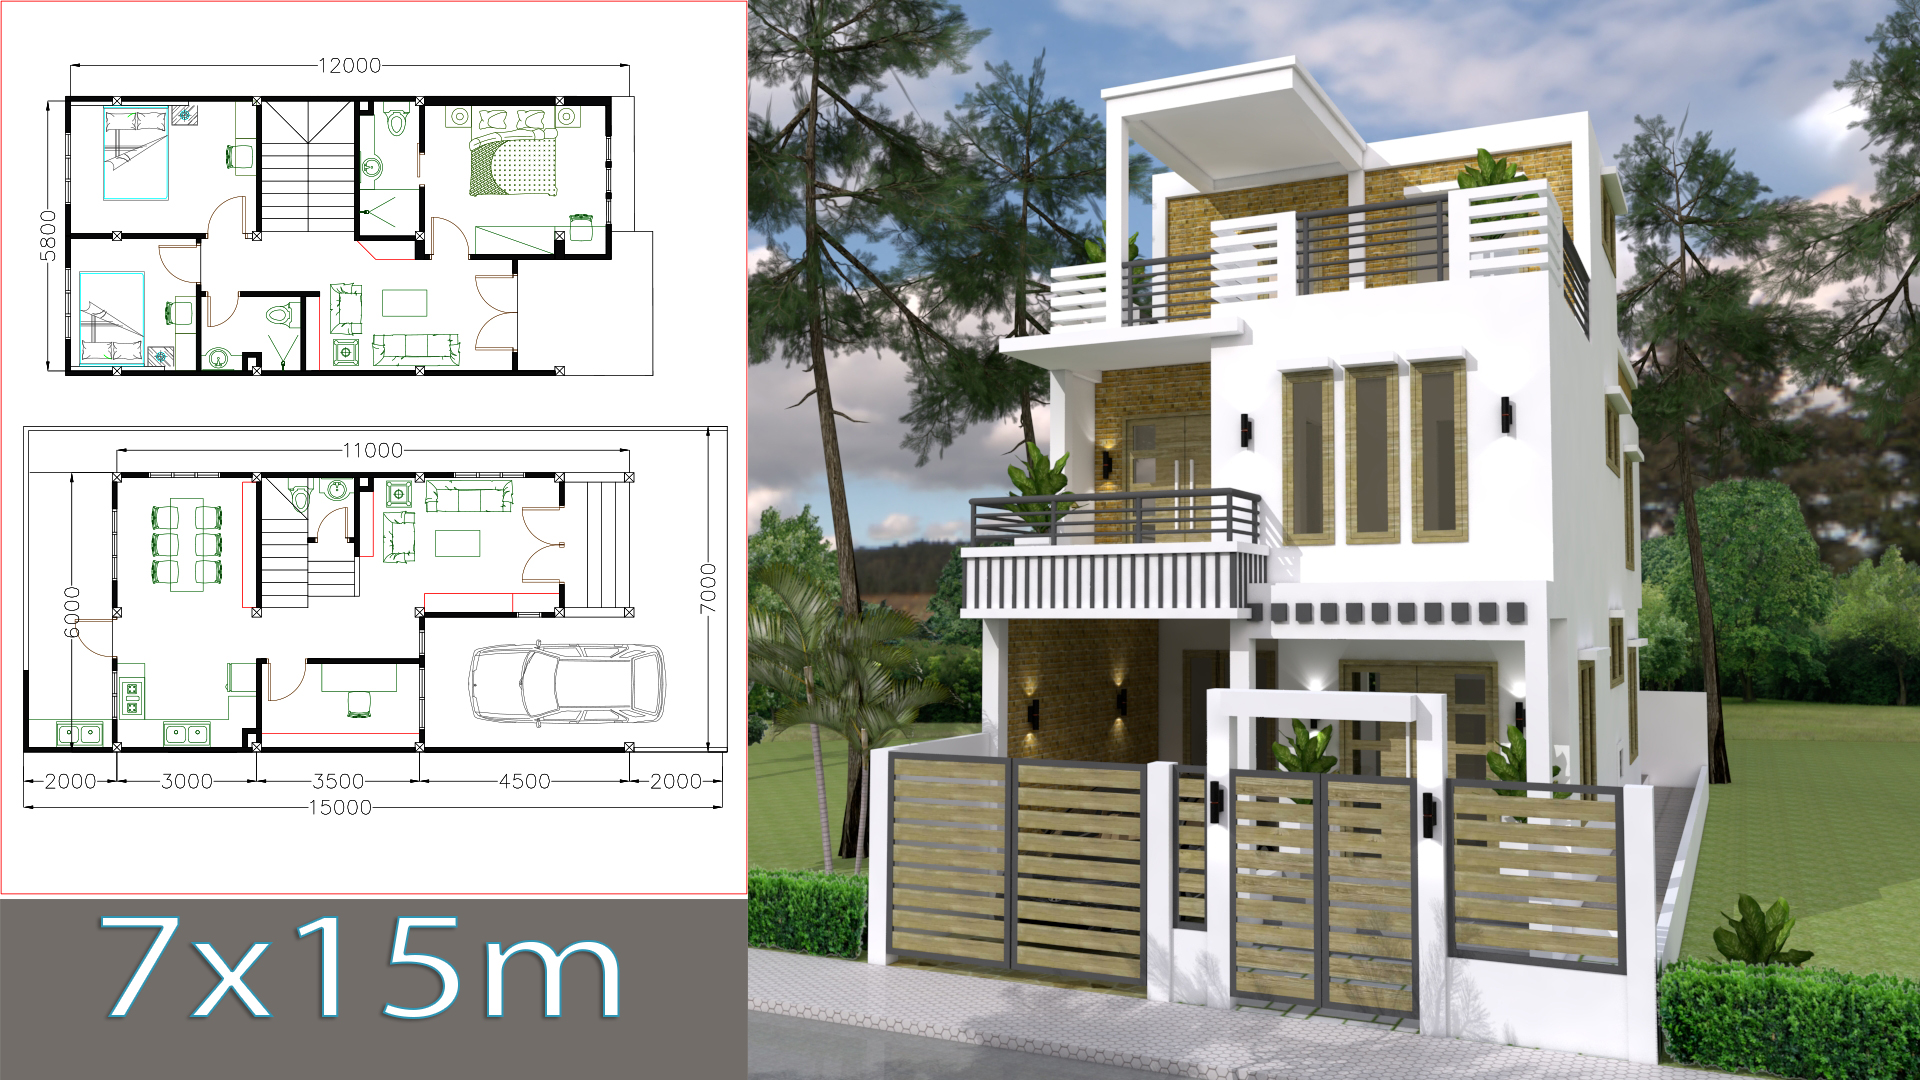 Sketchup home design plan 7x15m with 3 bedrooms